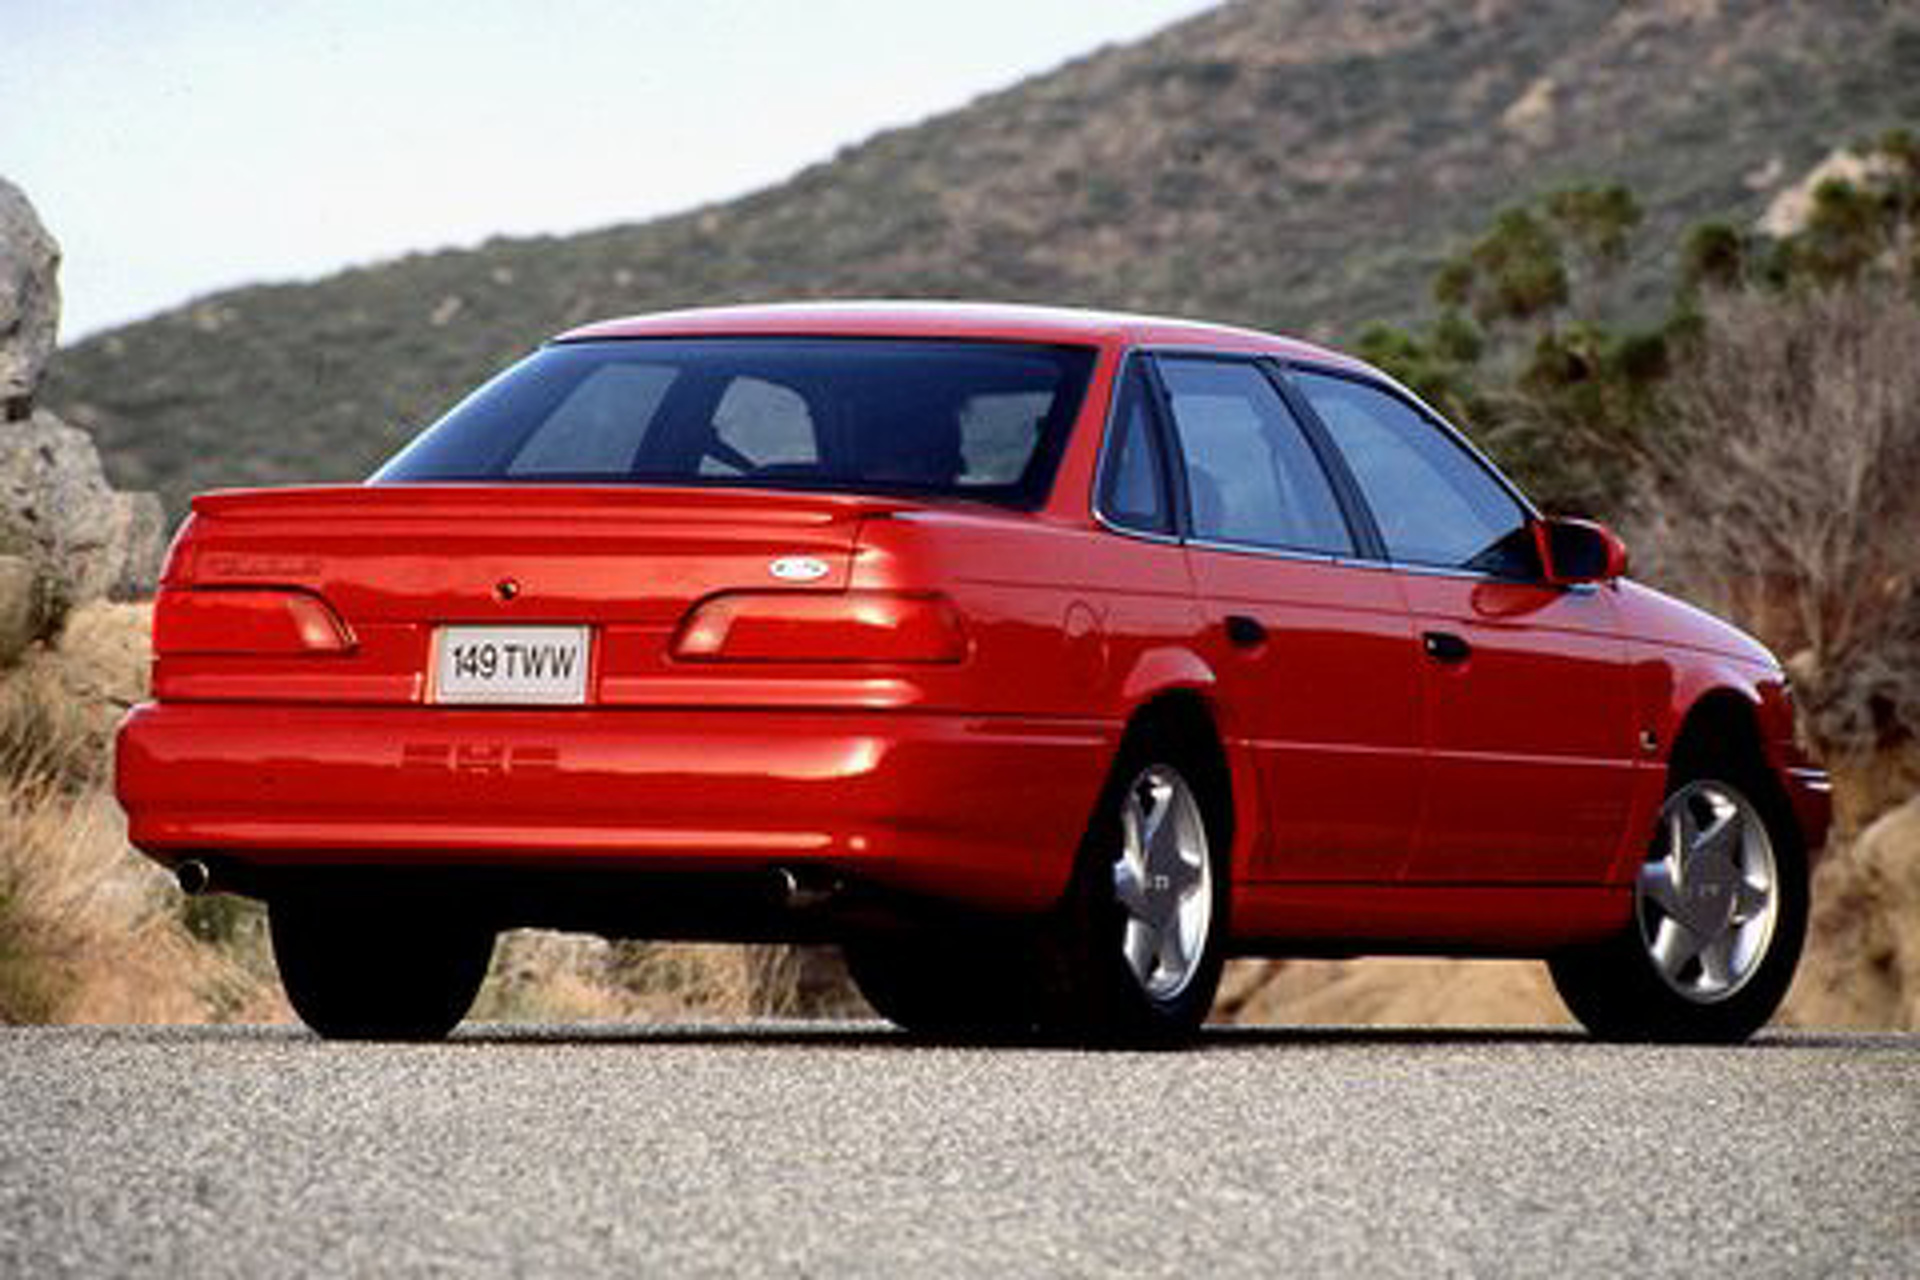 Ford Taurus SHO: What's in a Name?